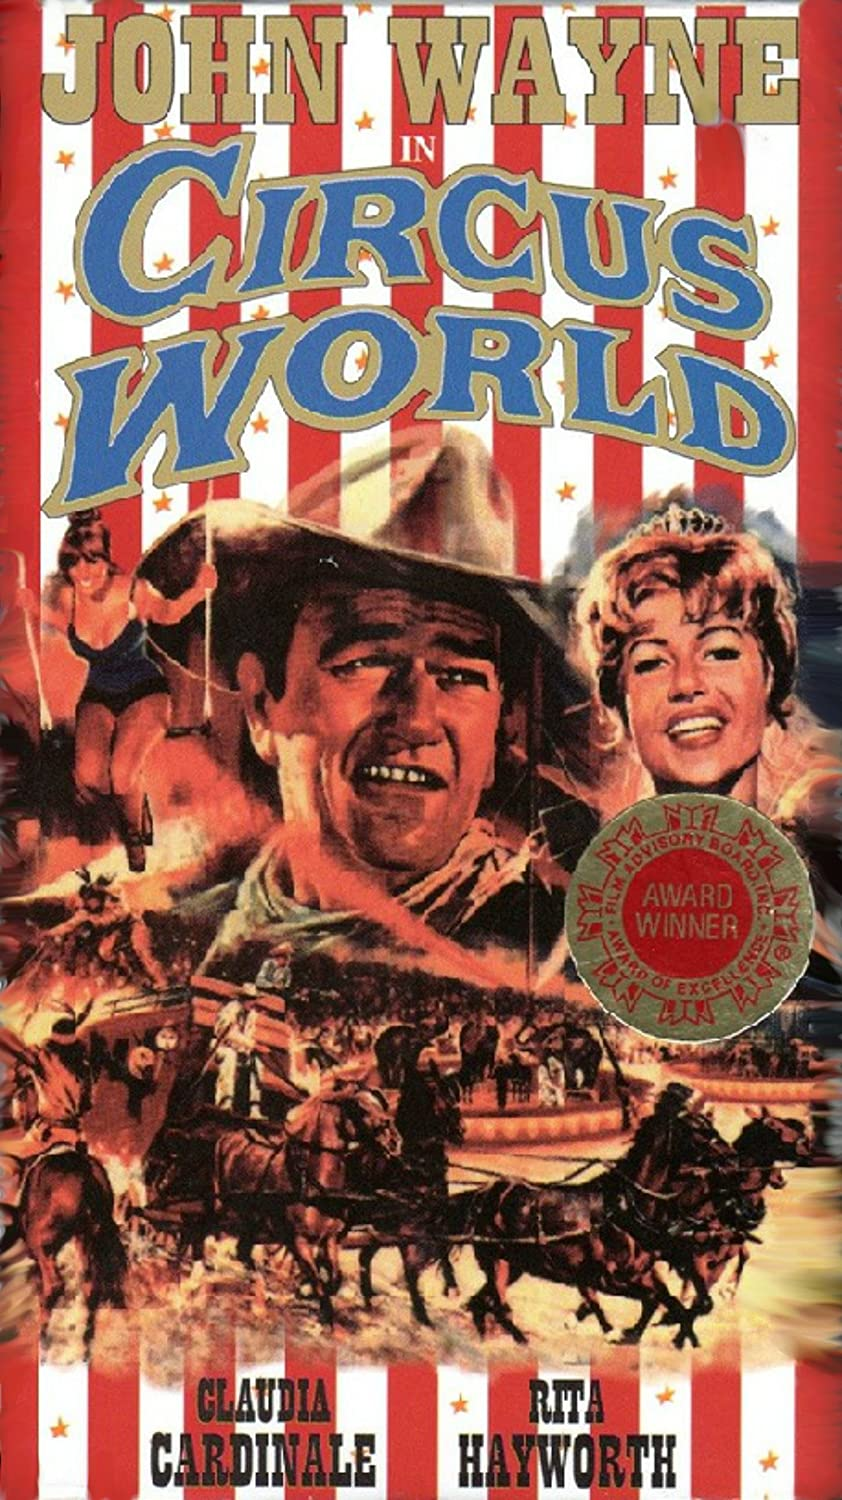 Amazon.com: Circus World: John Wayne, Rita Hayworth, Claudia ...